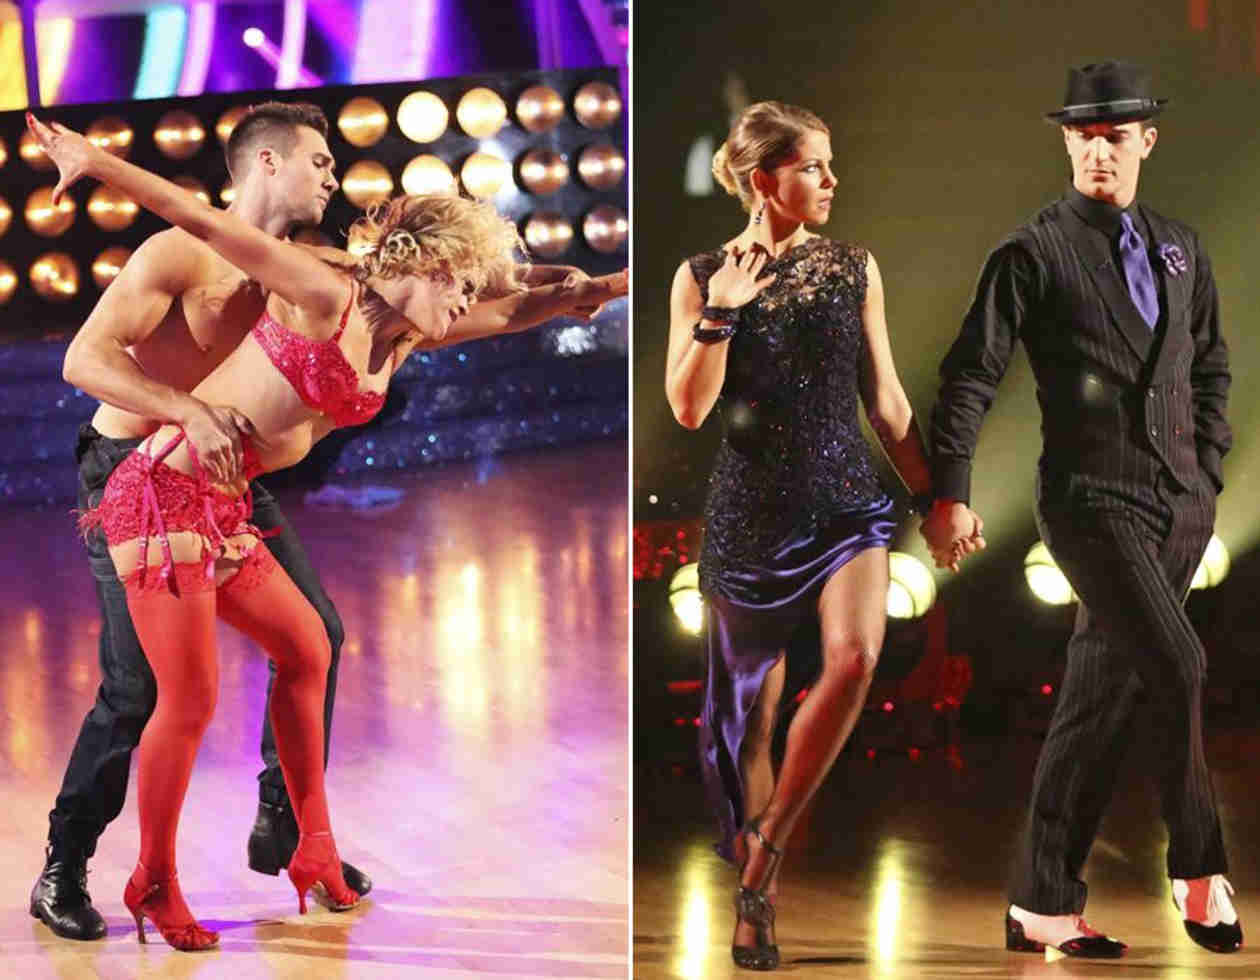 Dancing With the Stars 2014: Watch All the Season 18, Week 8 Performances (VIDEOS)